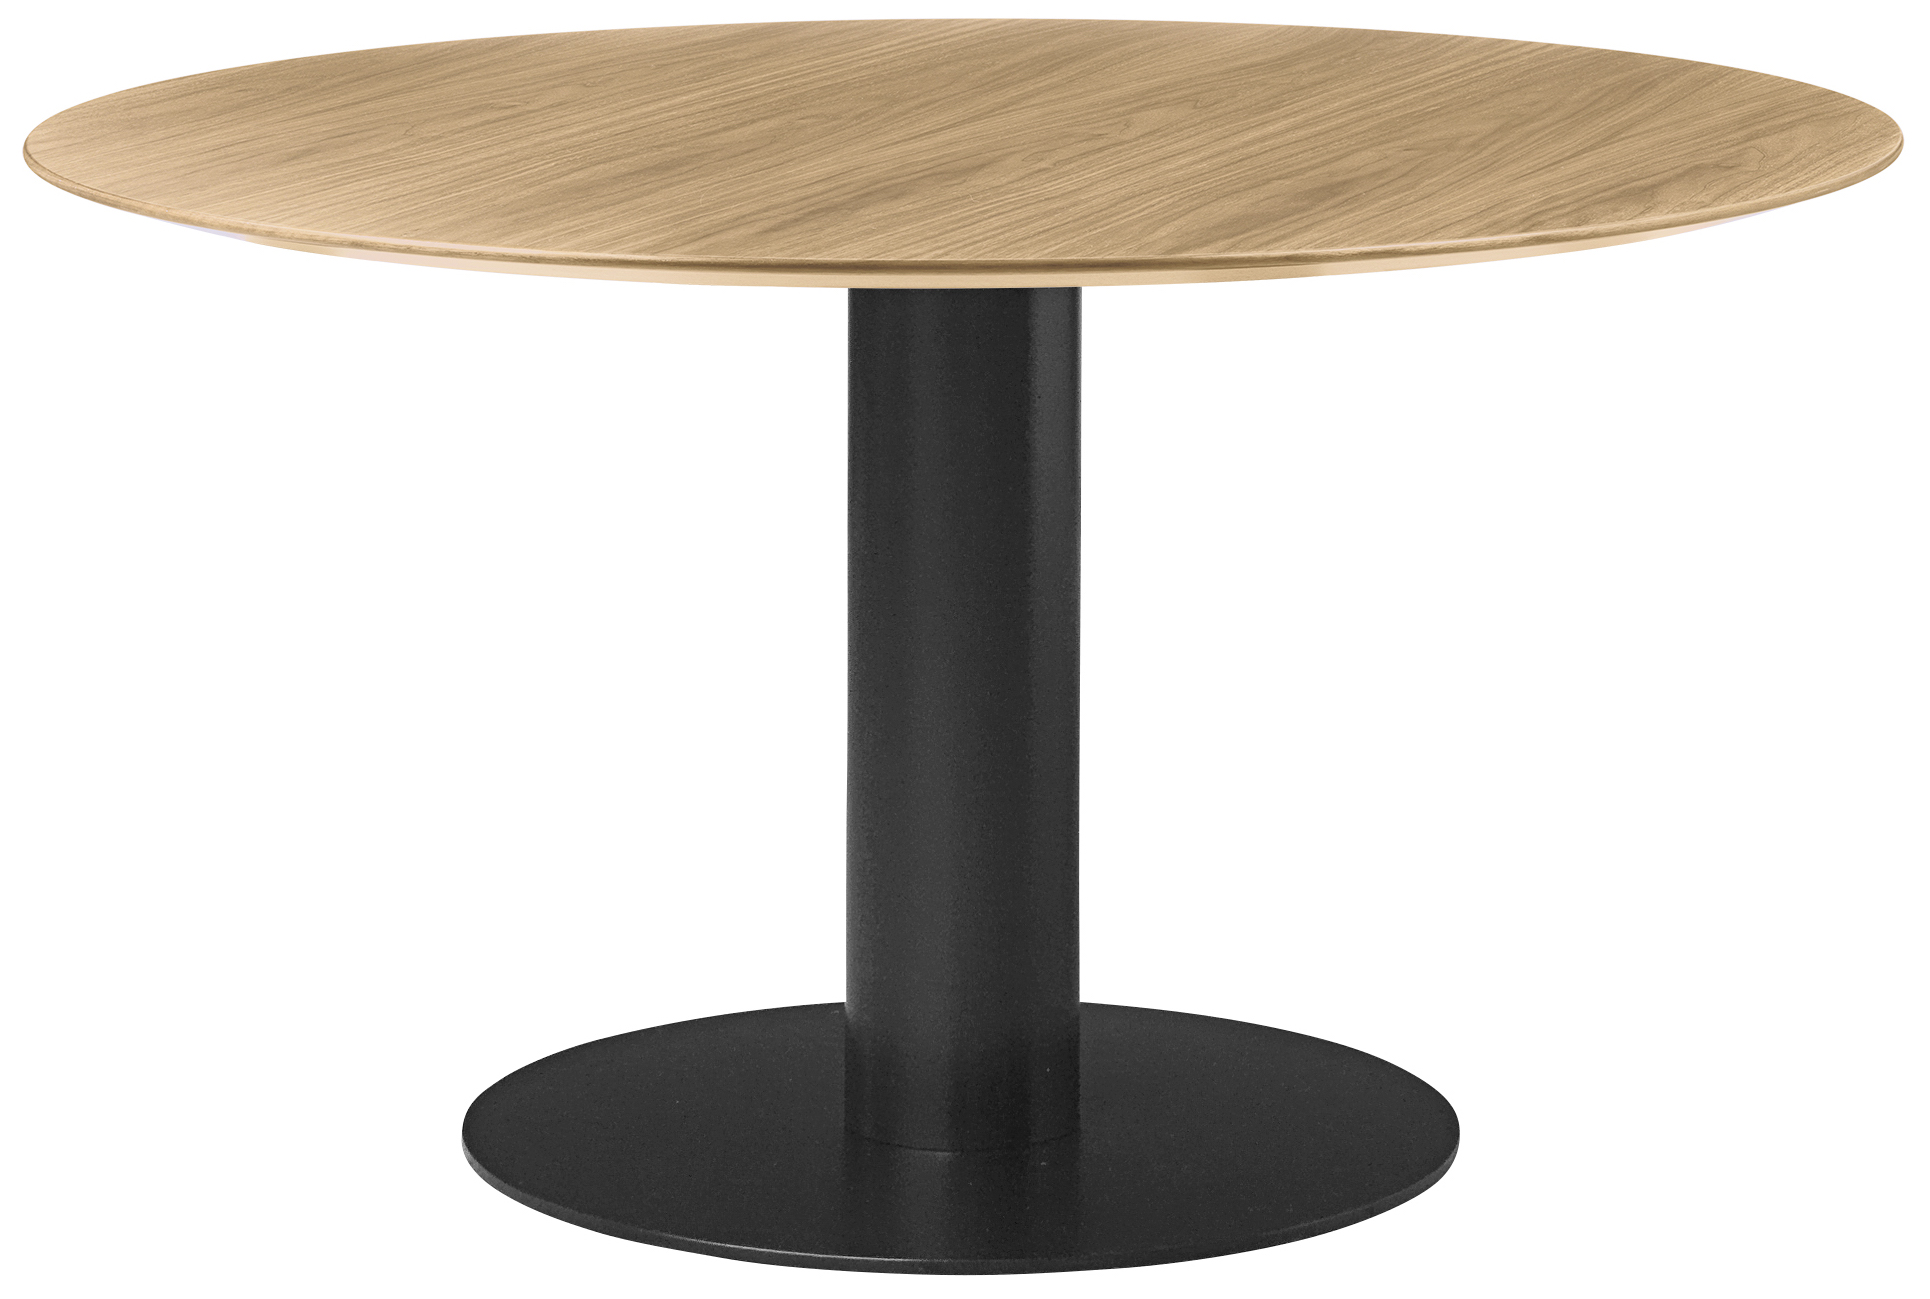 gubi round tables 2 0 wooden table top gubi